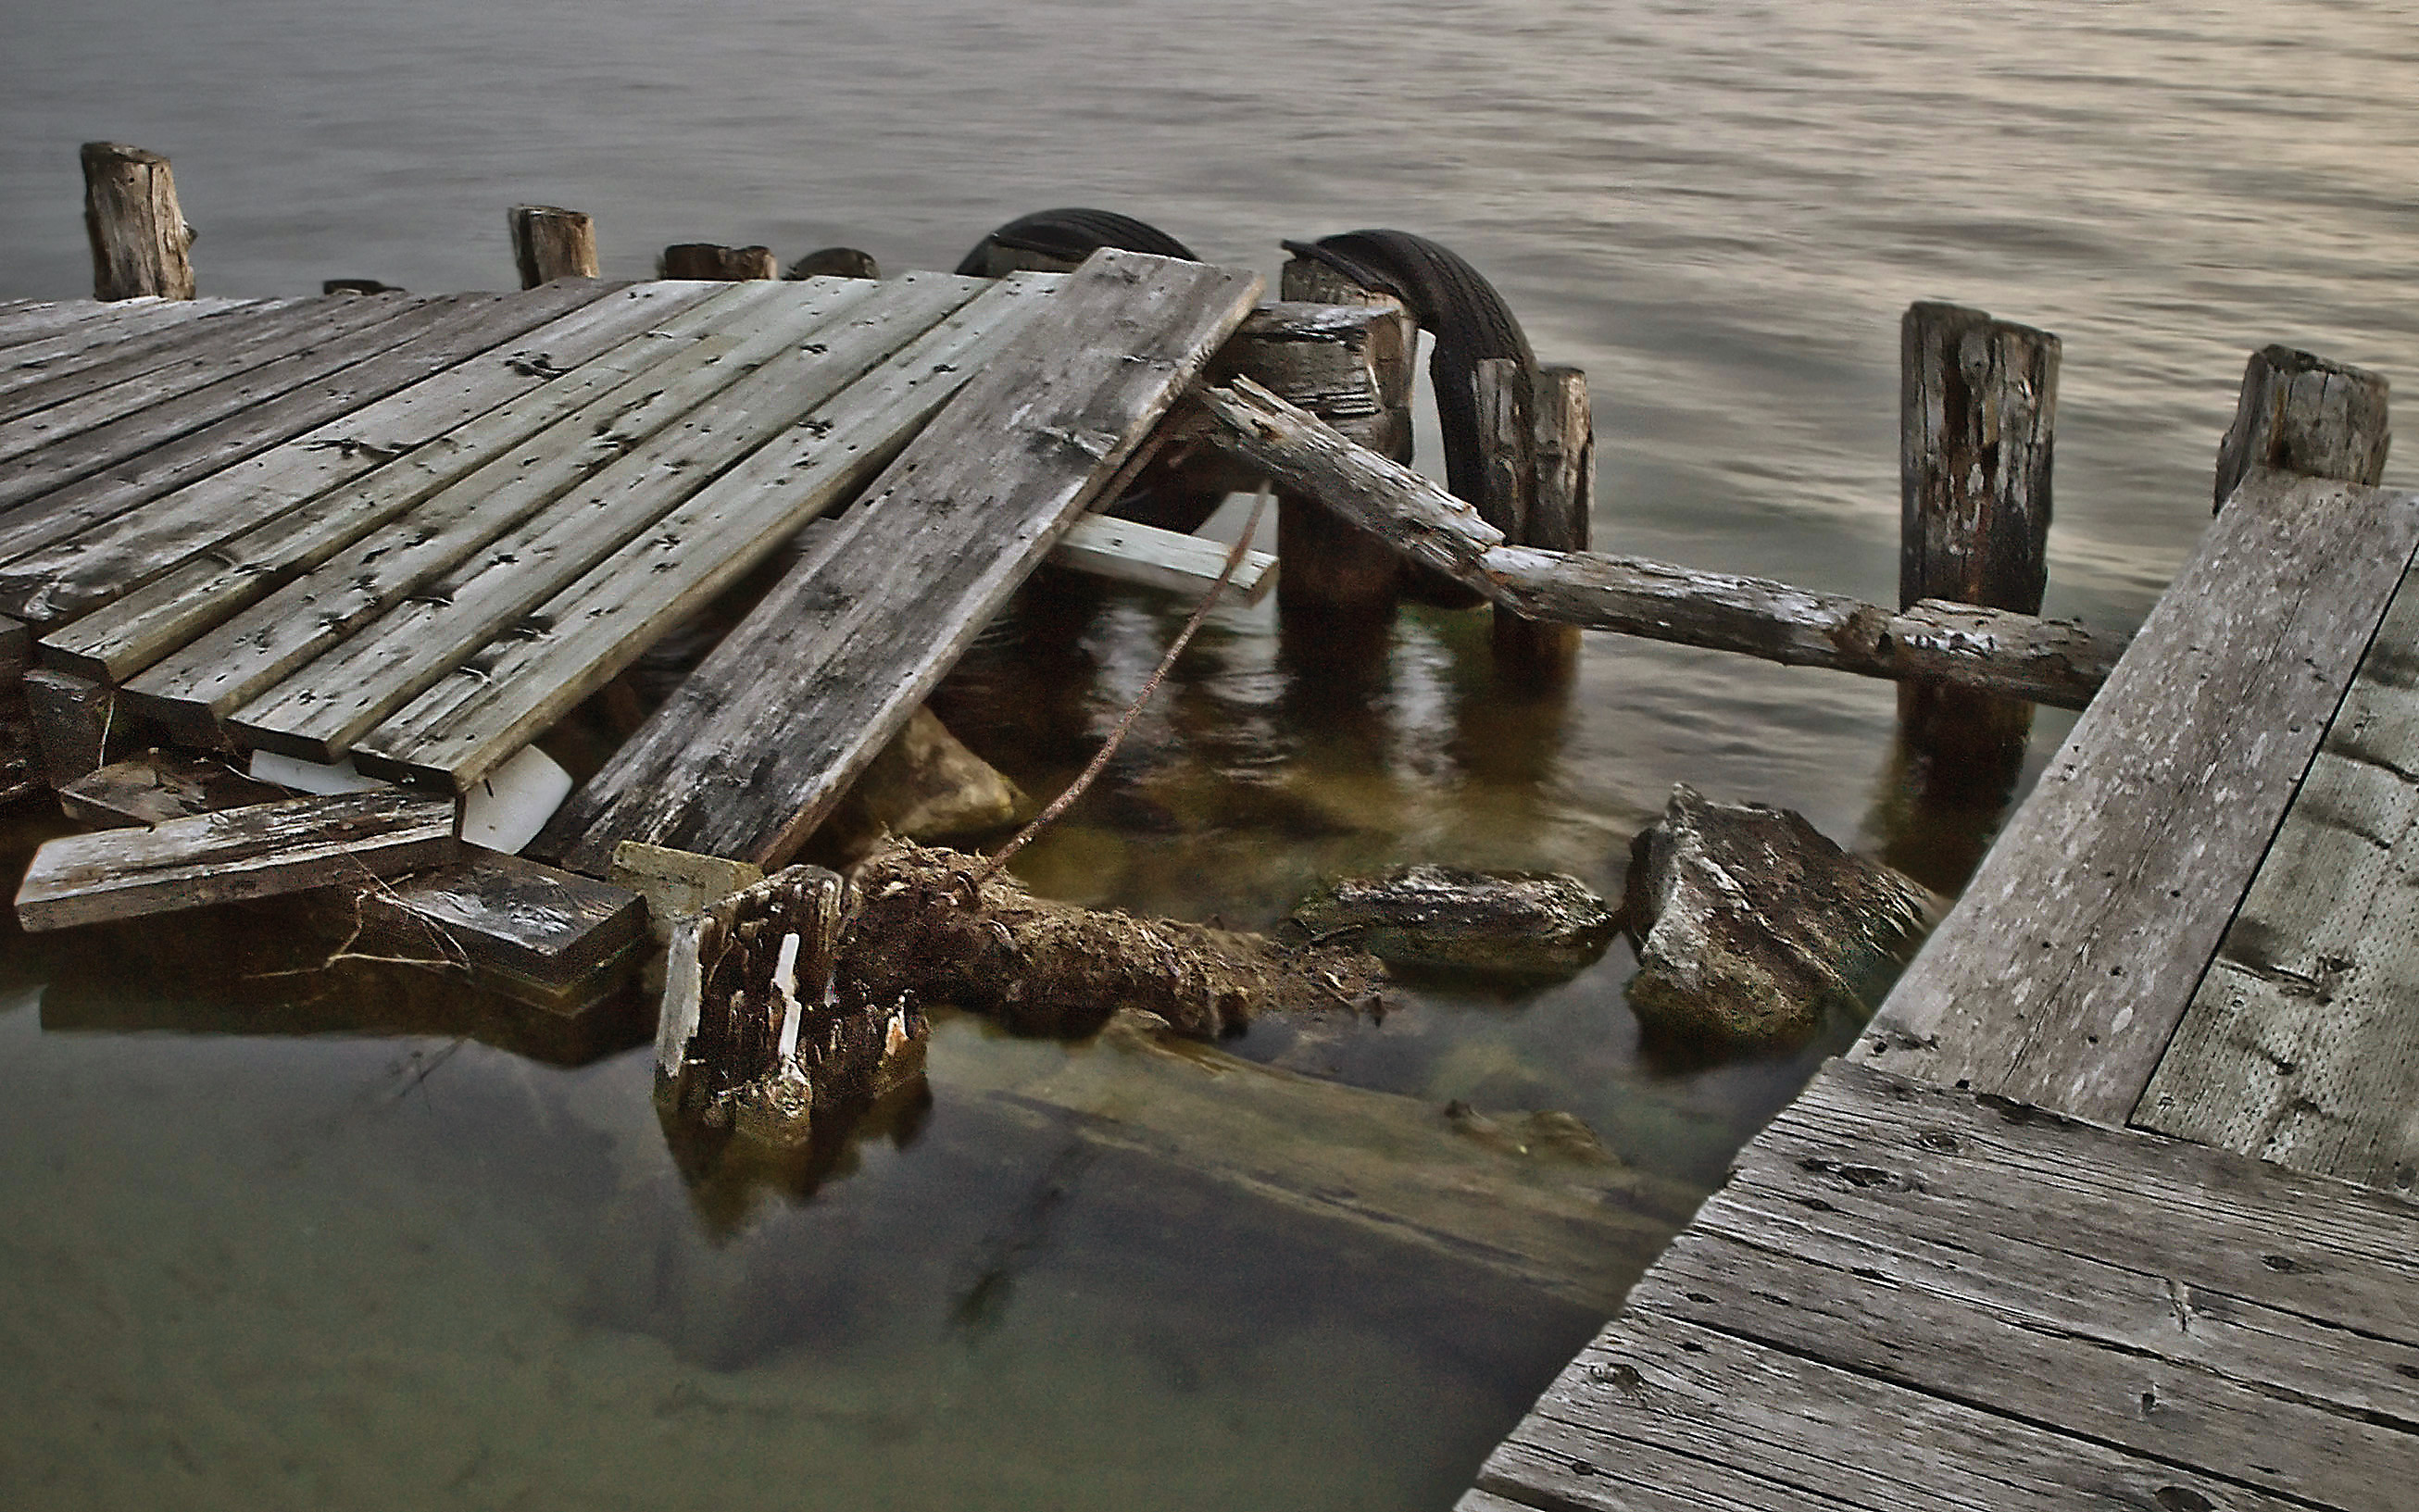 Derelict Pier, Broken, Damaged, Derelict, Dock, HQ Photo